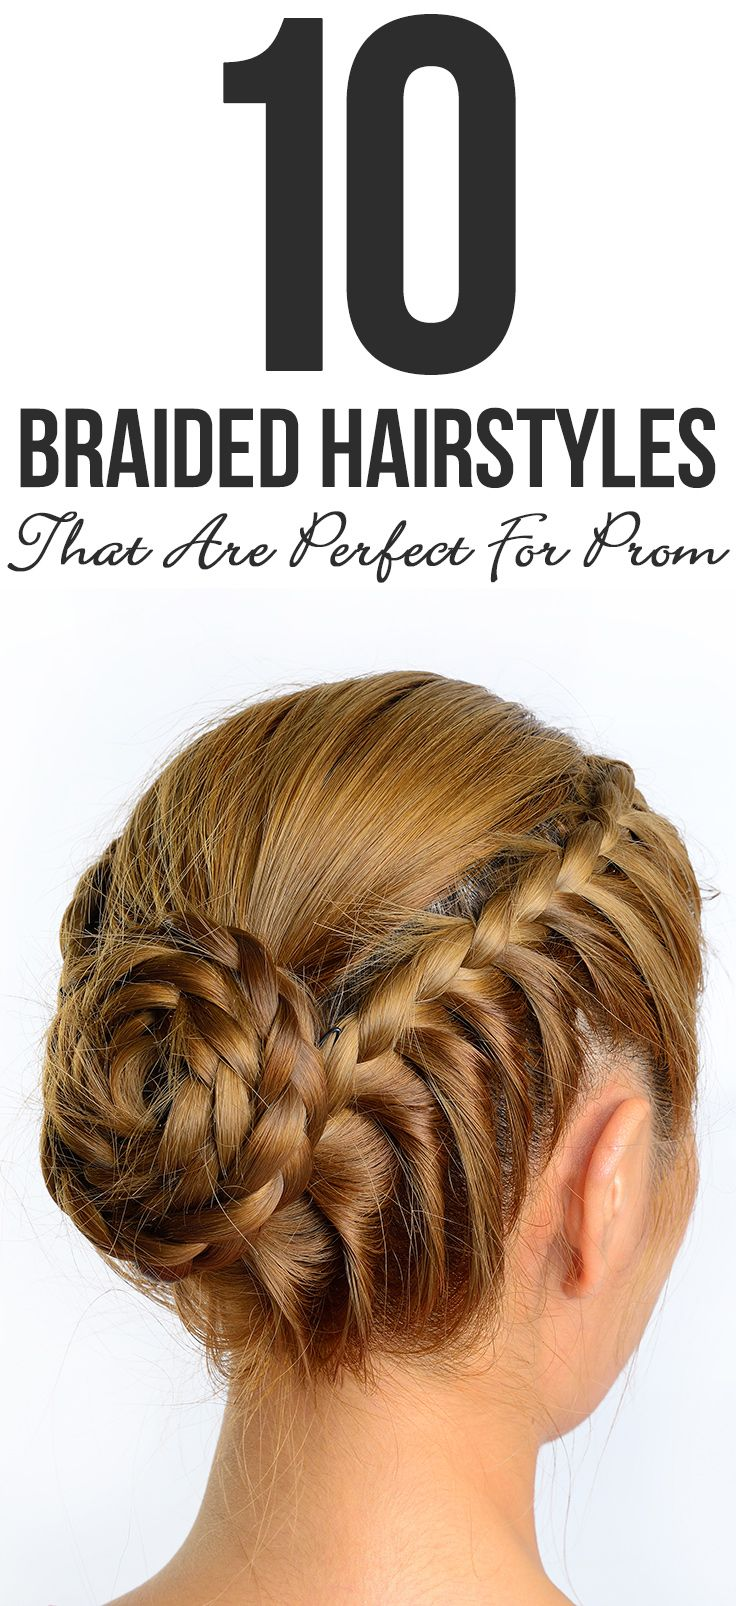 Top 10 Braided Hairstyles That Are Perfect For Prom